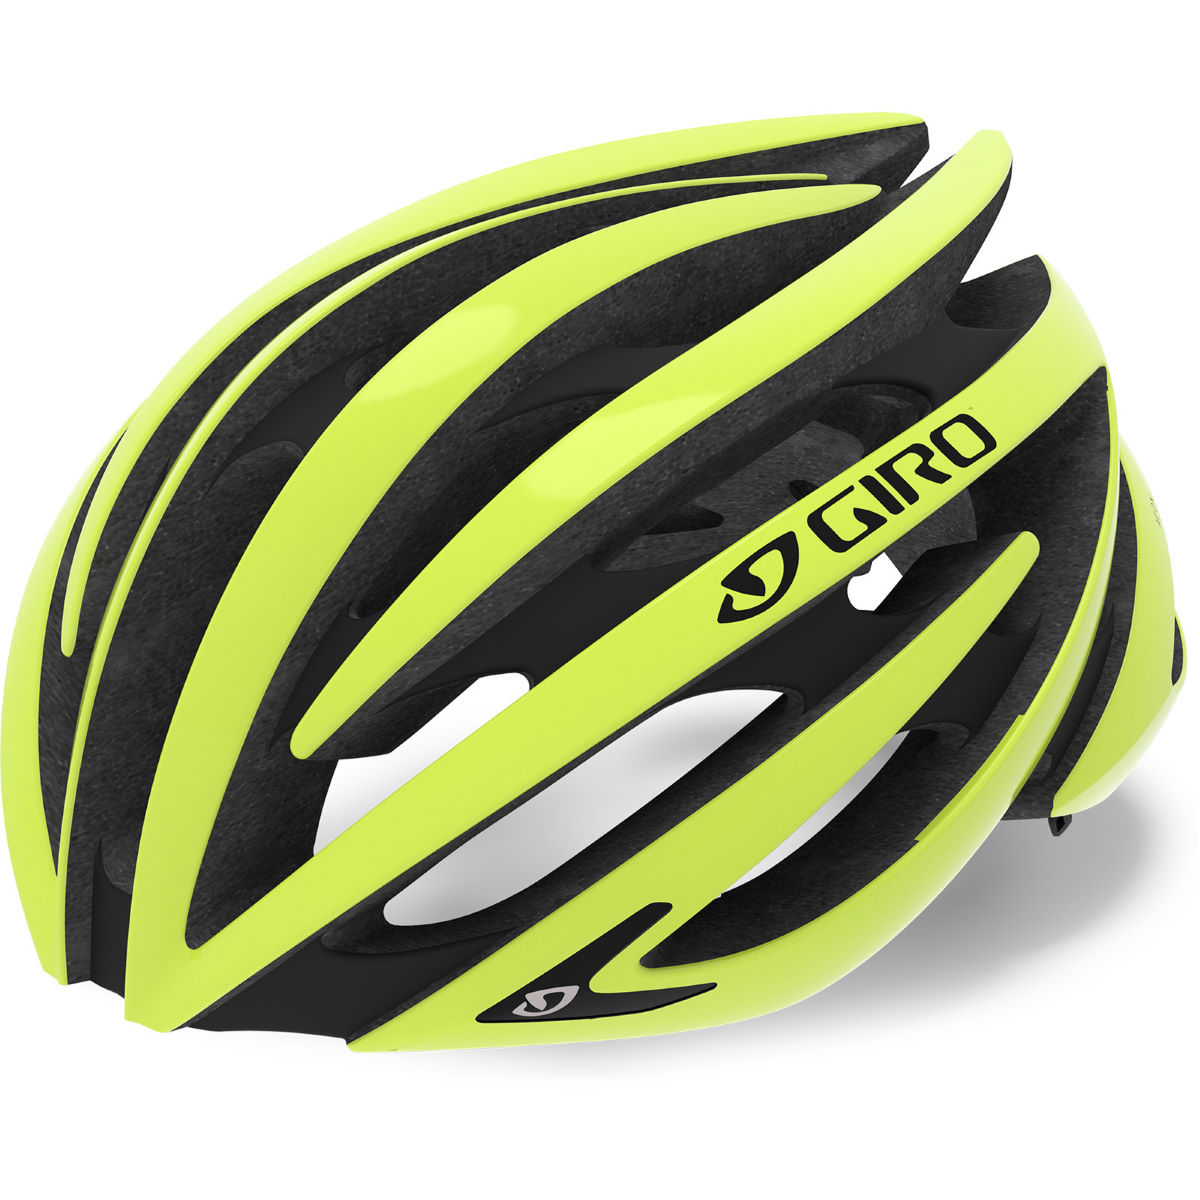 Image of Casque de route Giro Aeon - L Citron 20 | Casques